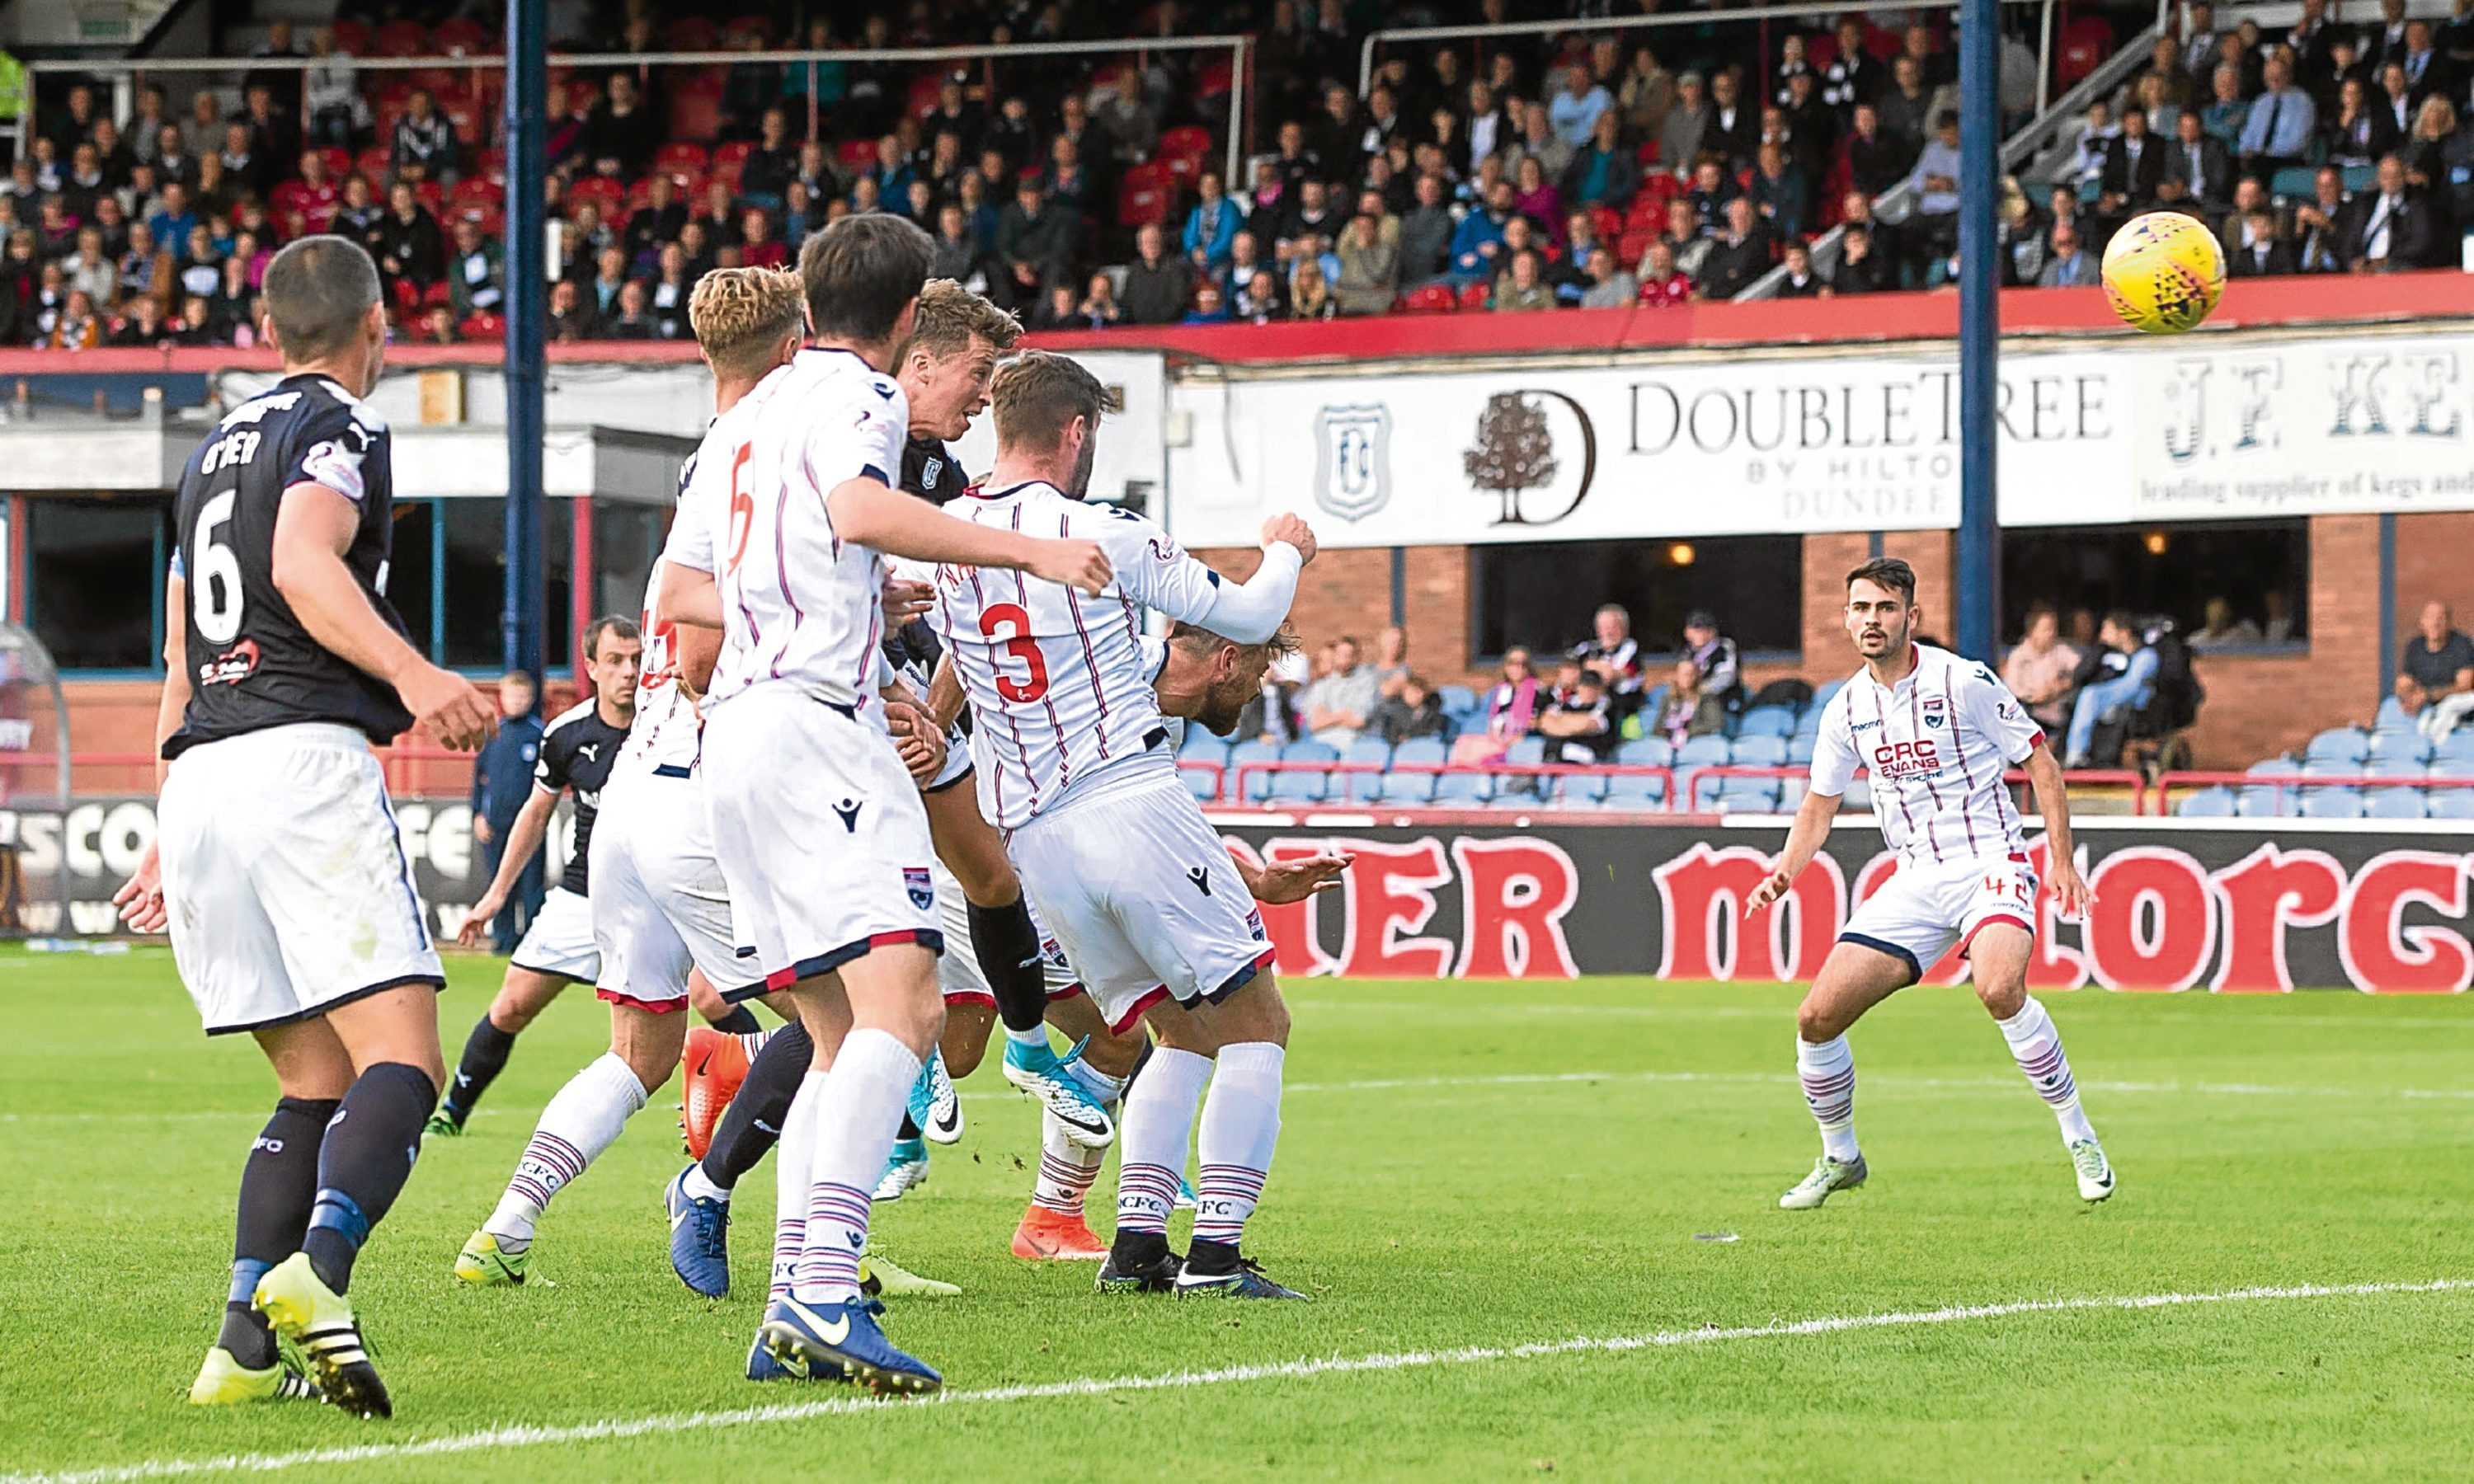 Dundee boss Neil McCann was pleased with the fight his side showed to claw a goal back against Ross County on Saturday